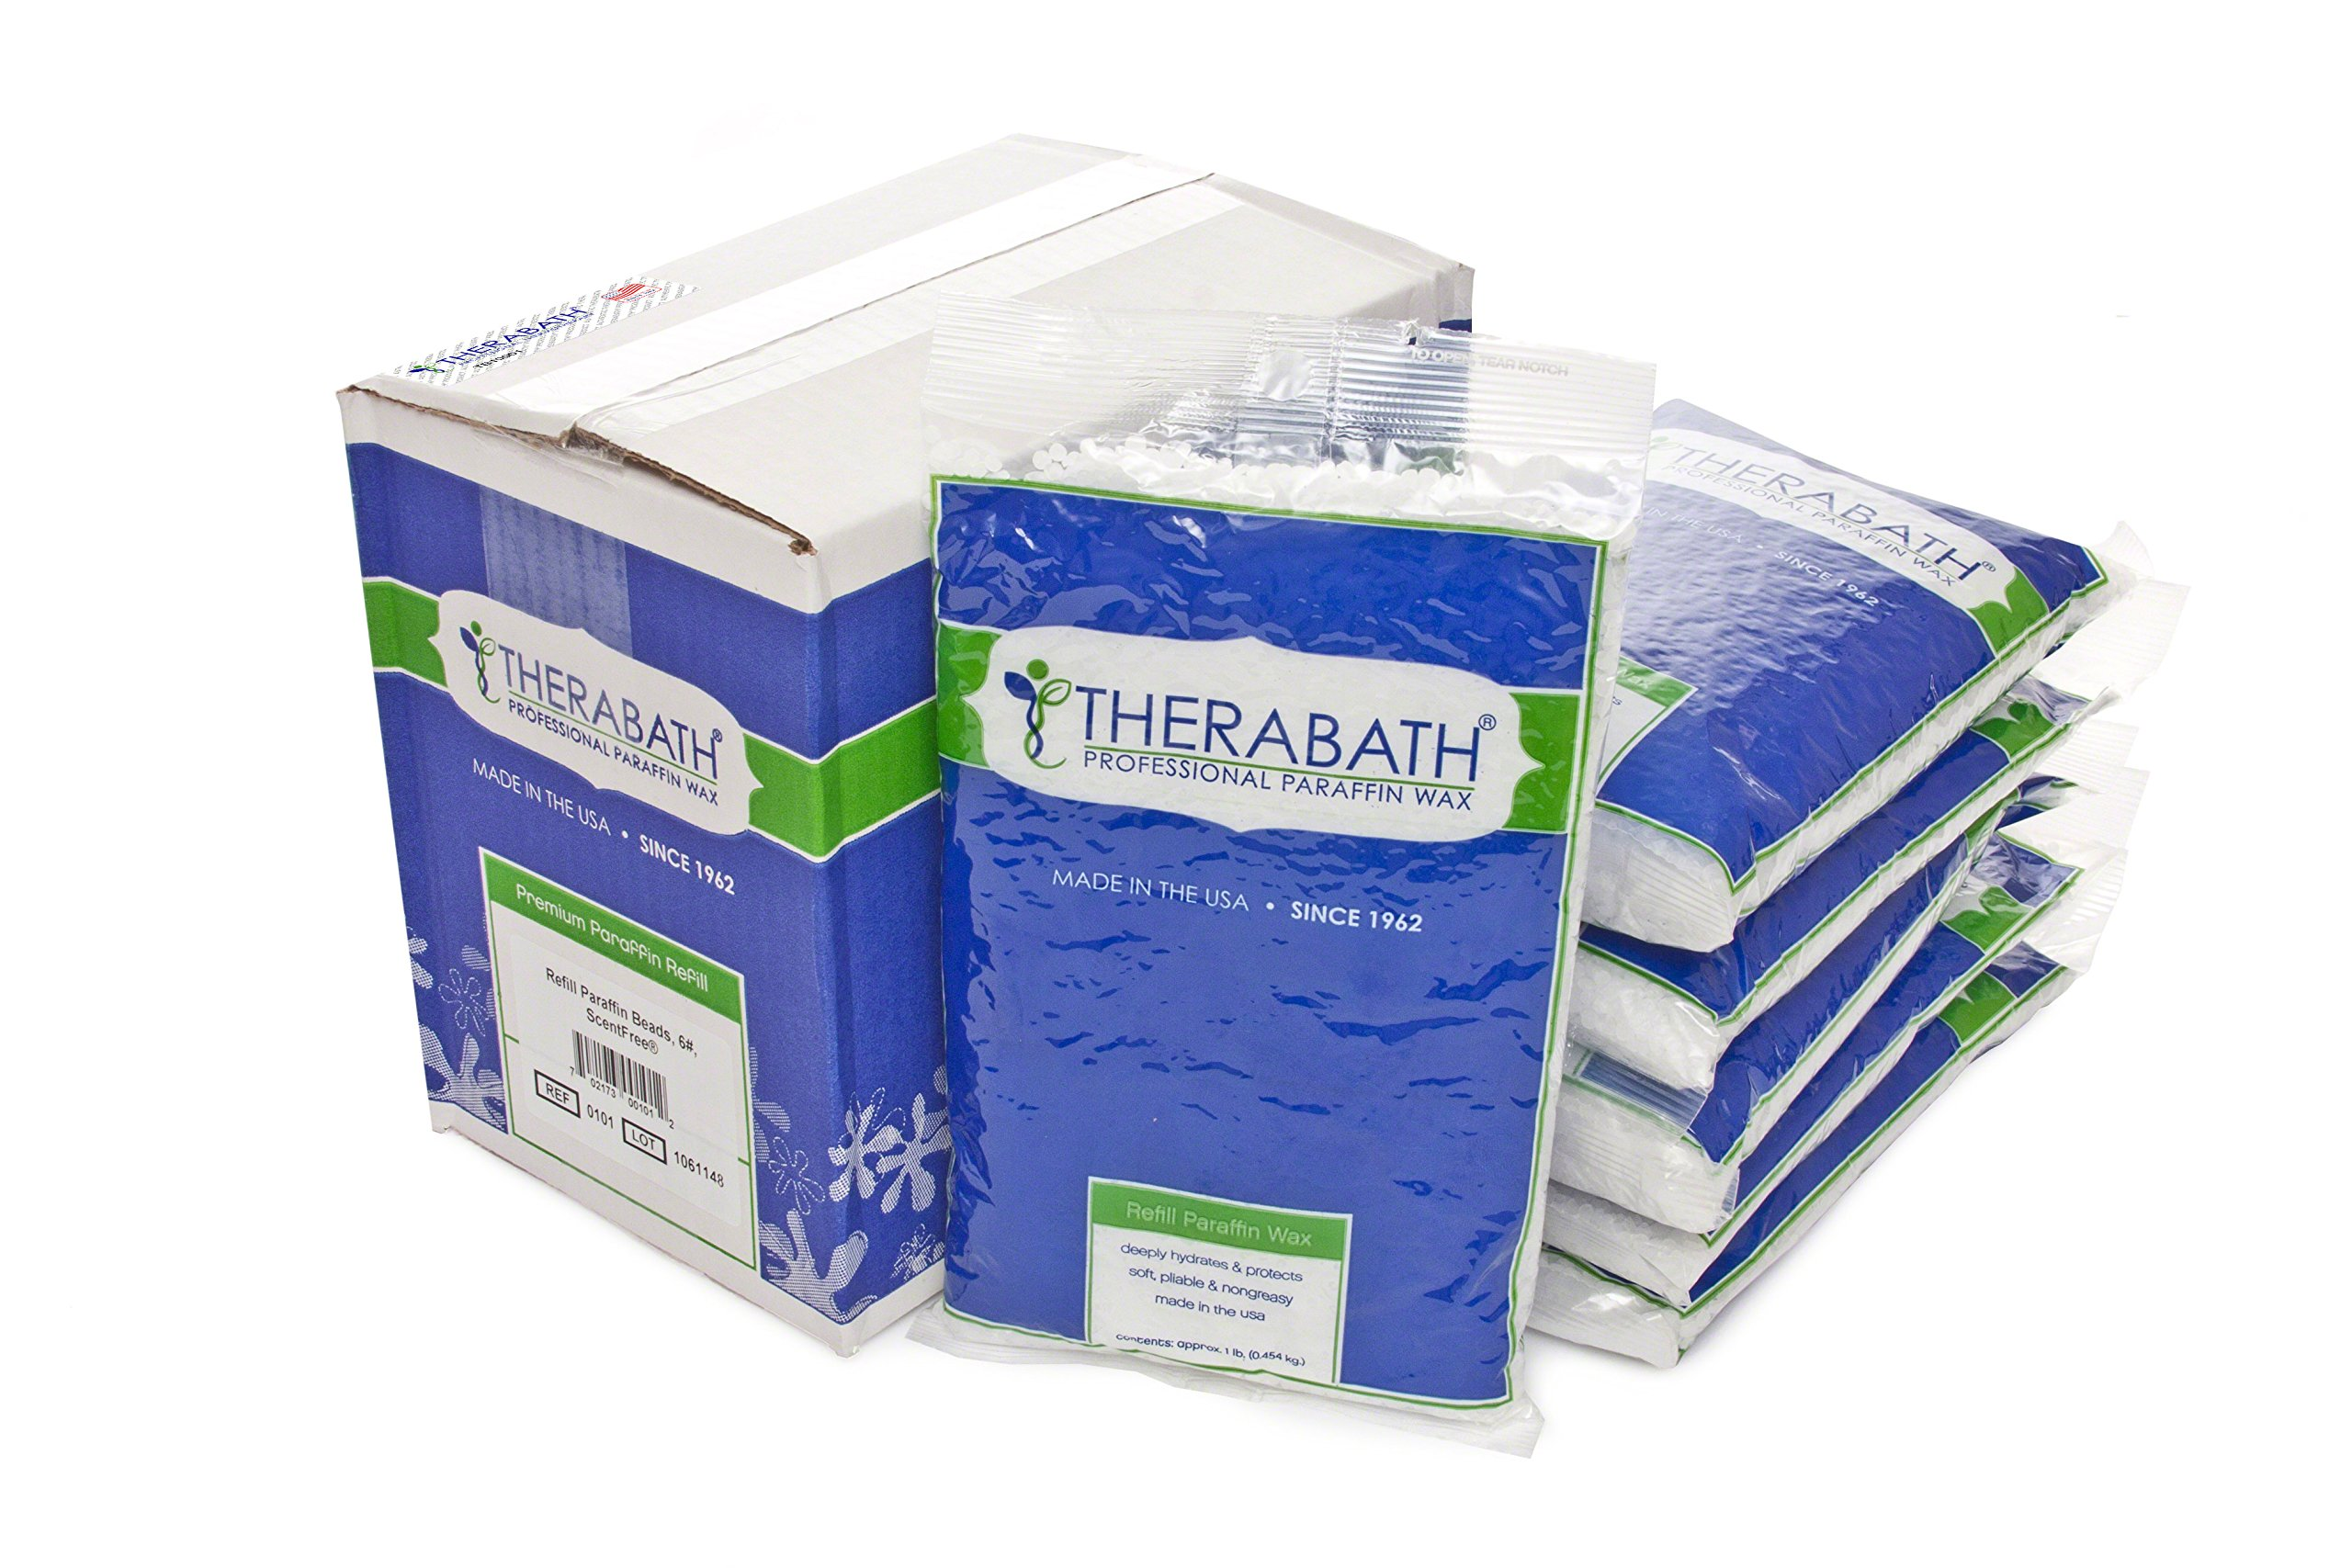 Therabath Paraffin Wax Refill - Use To Relieve Arthritis Pain and Stiff Muscles - Deeply Hydrates and Protects - 24lbs Scent Free by Therabath (Image #2)